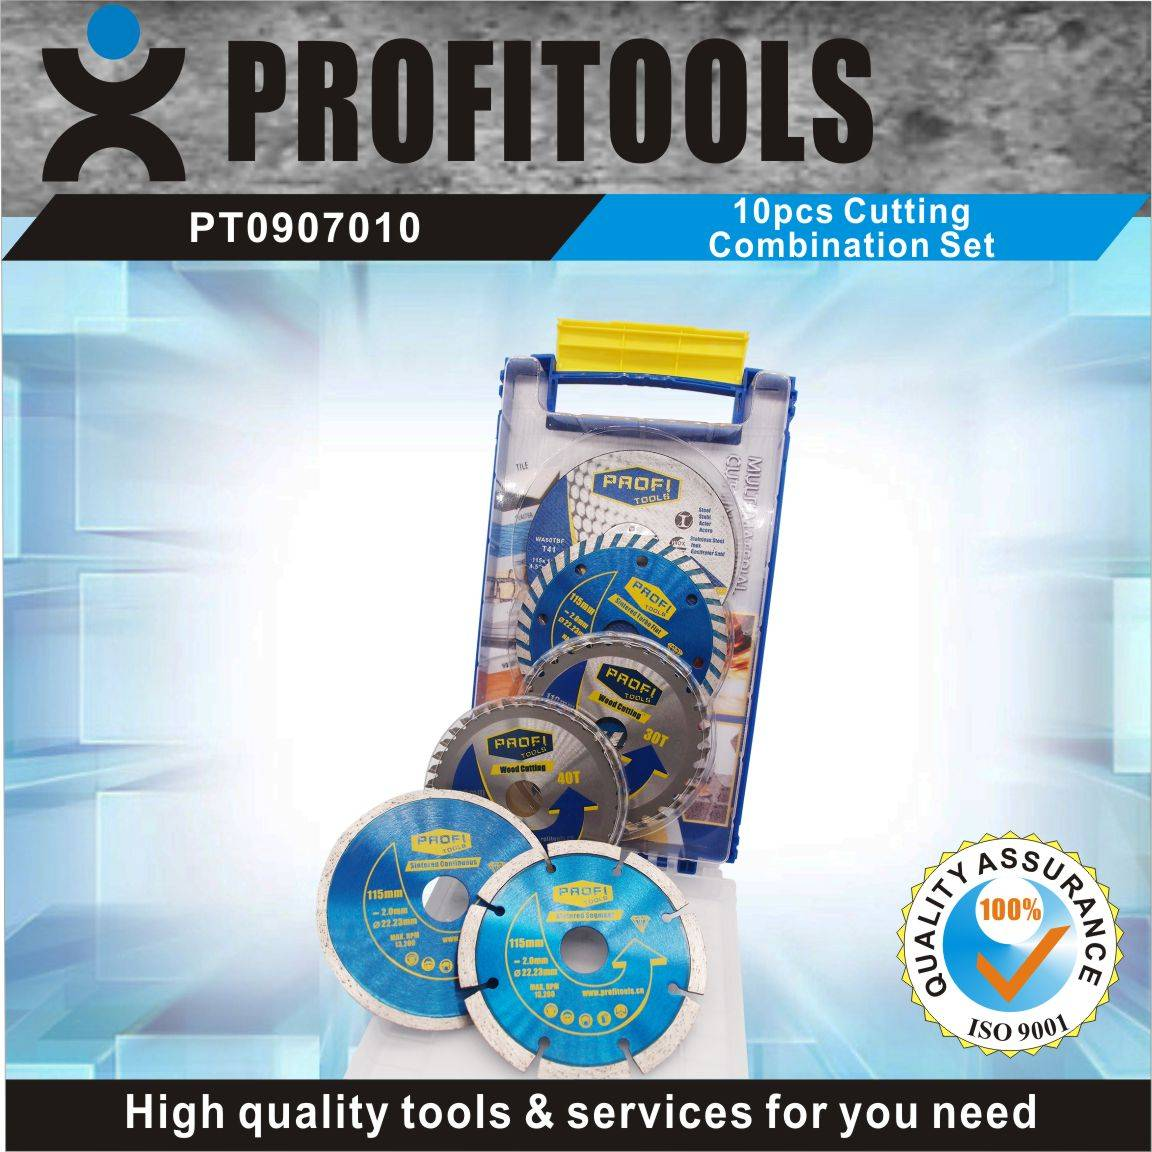 10pcs Prifitools Cutting Combination Blades for Different Needs